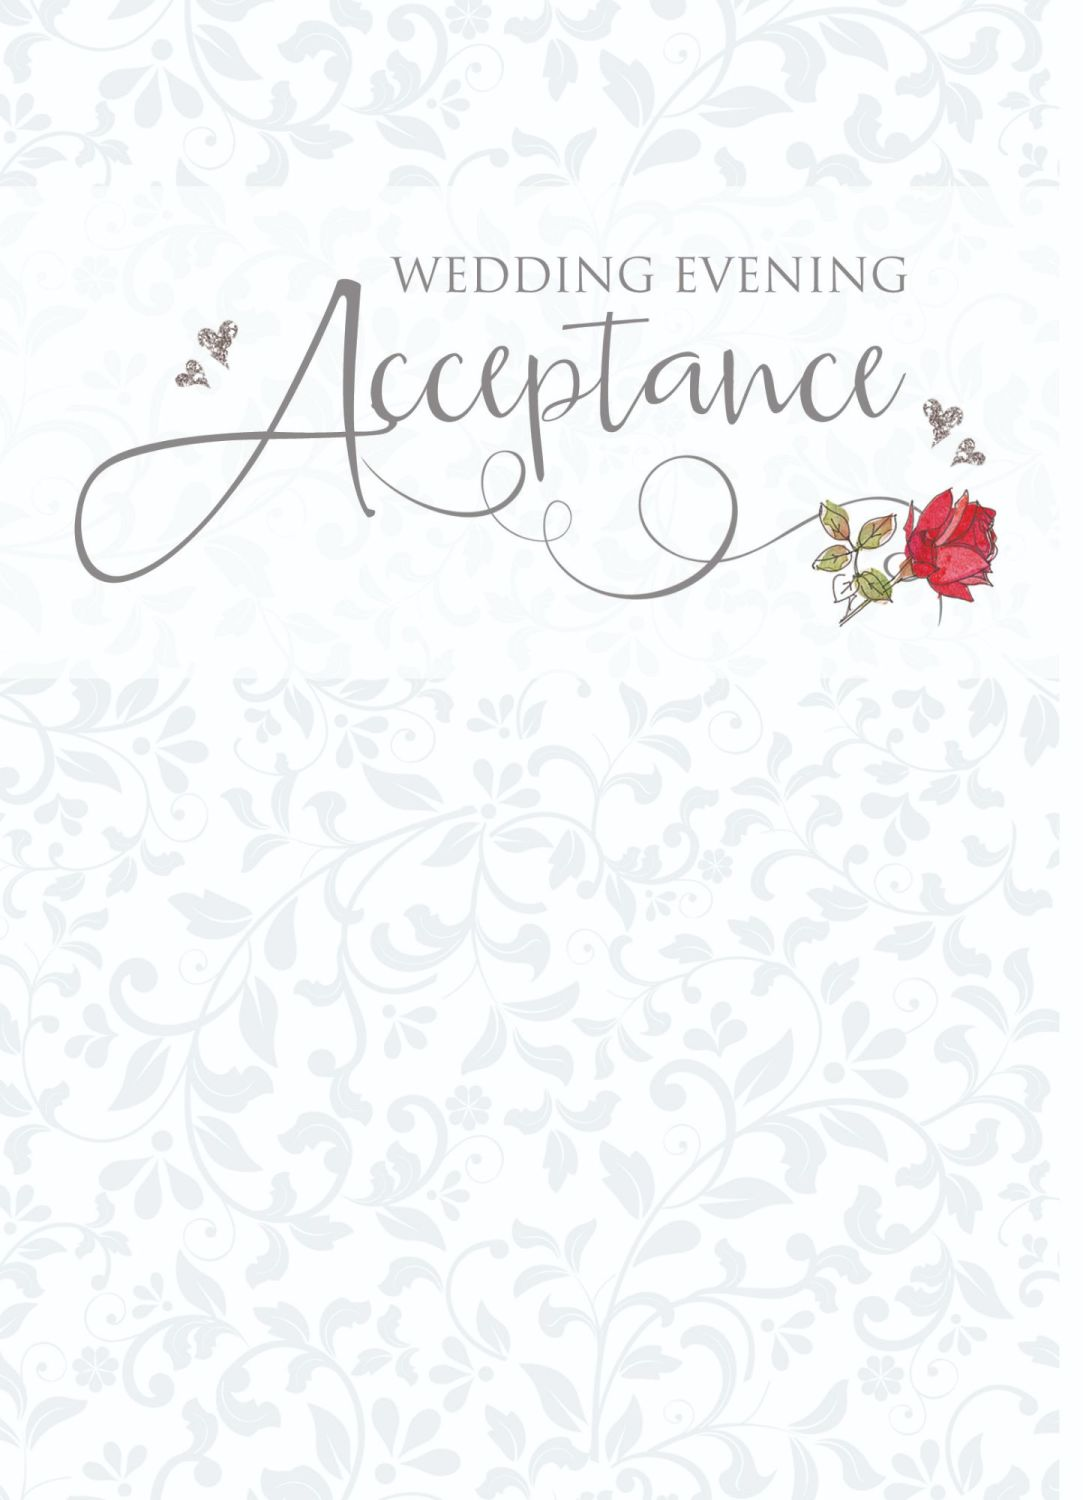 Wedding Acceptance Cards - WEDDING Evening ACCEPTANCE - Beautiful RED Rose